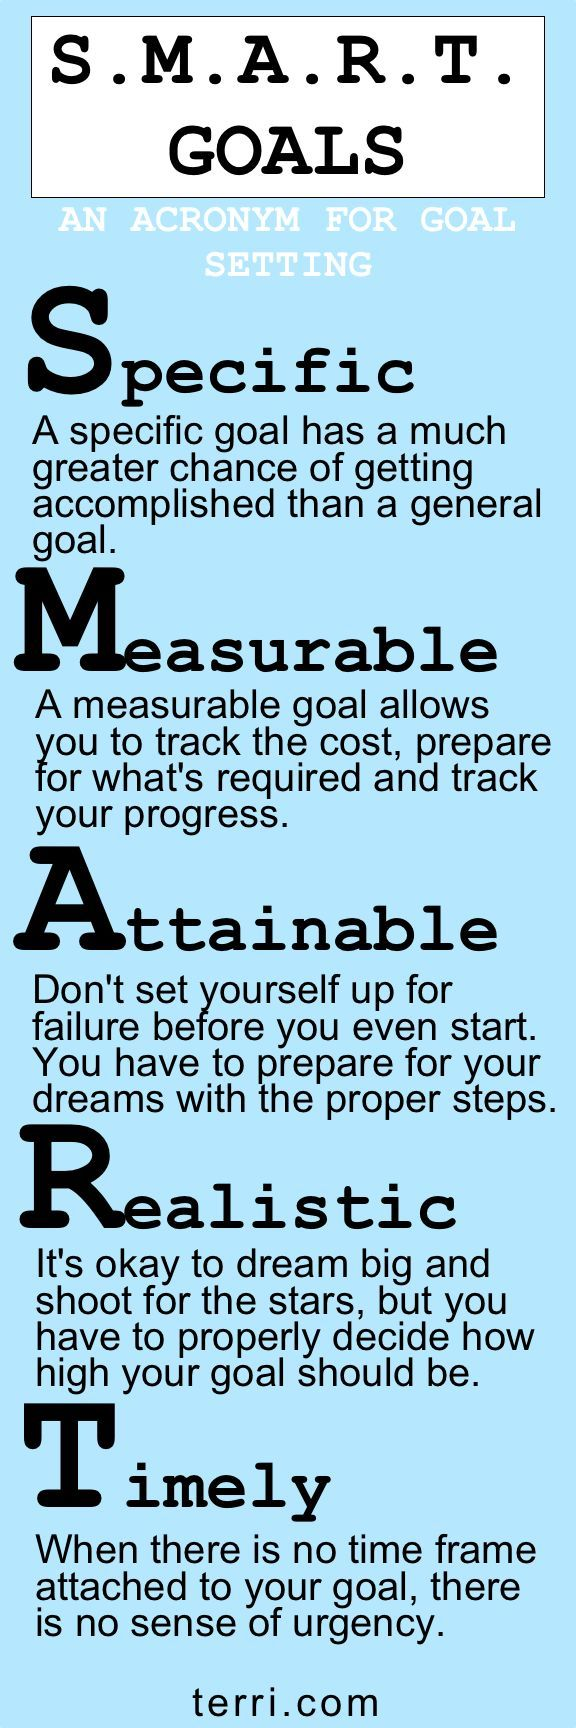 "A popular acronym for goal setting is ""S.M.A.R.T."" which means: Specific, Measurable, Attainable, Realistic and Timely. When setting goals, use this acronym as a guide to set the right goals for you. For more motivational quotes / teachings and success tips visit http://terri.com"